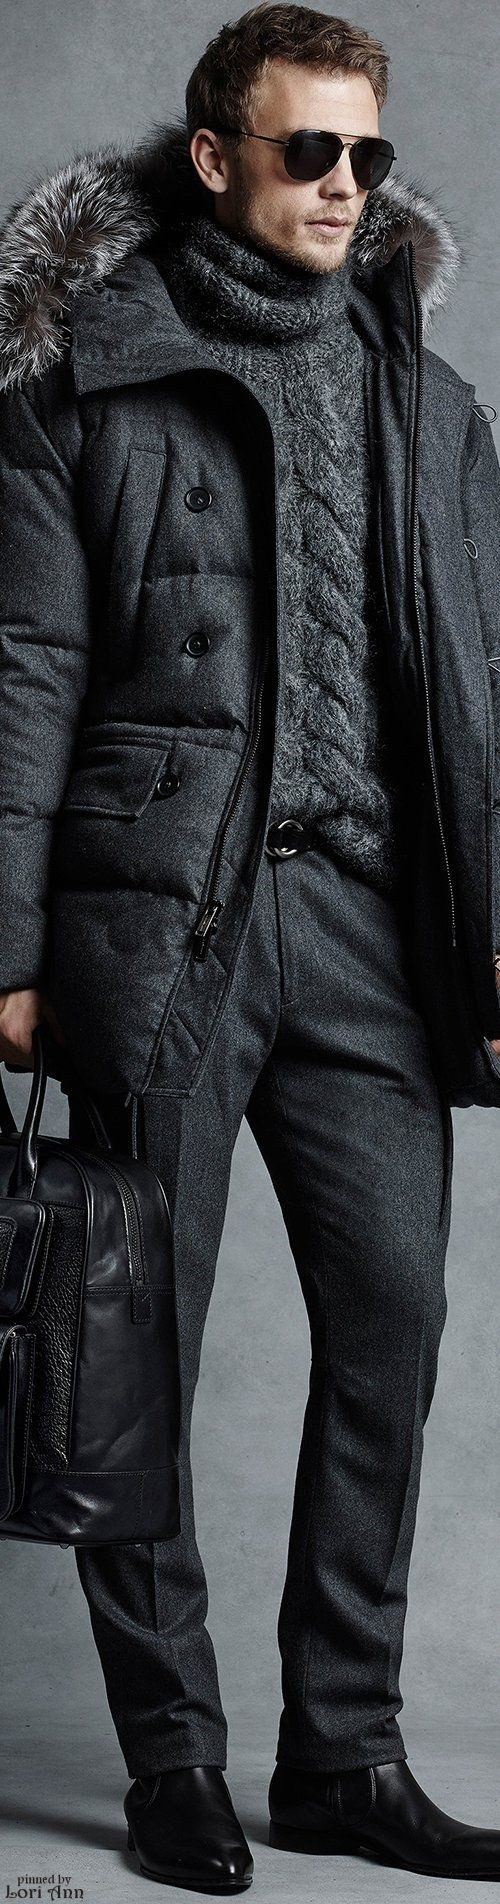 men's charcoal gray monochromatic outfit